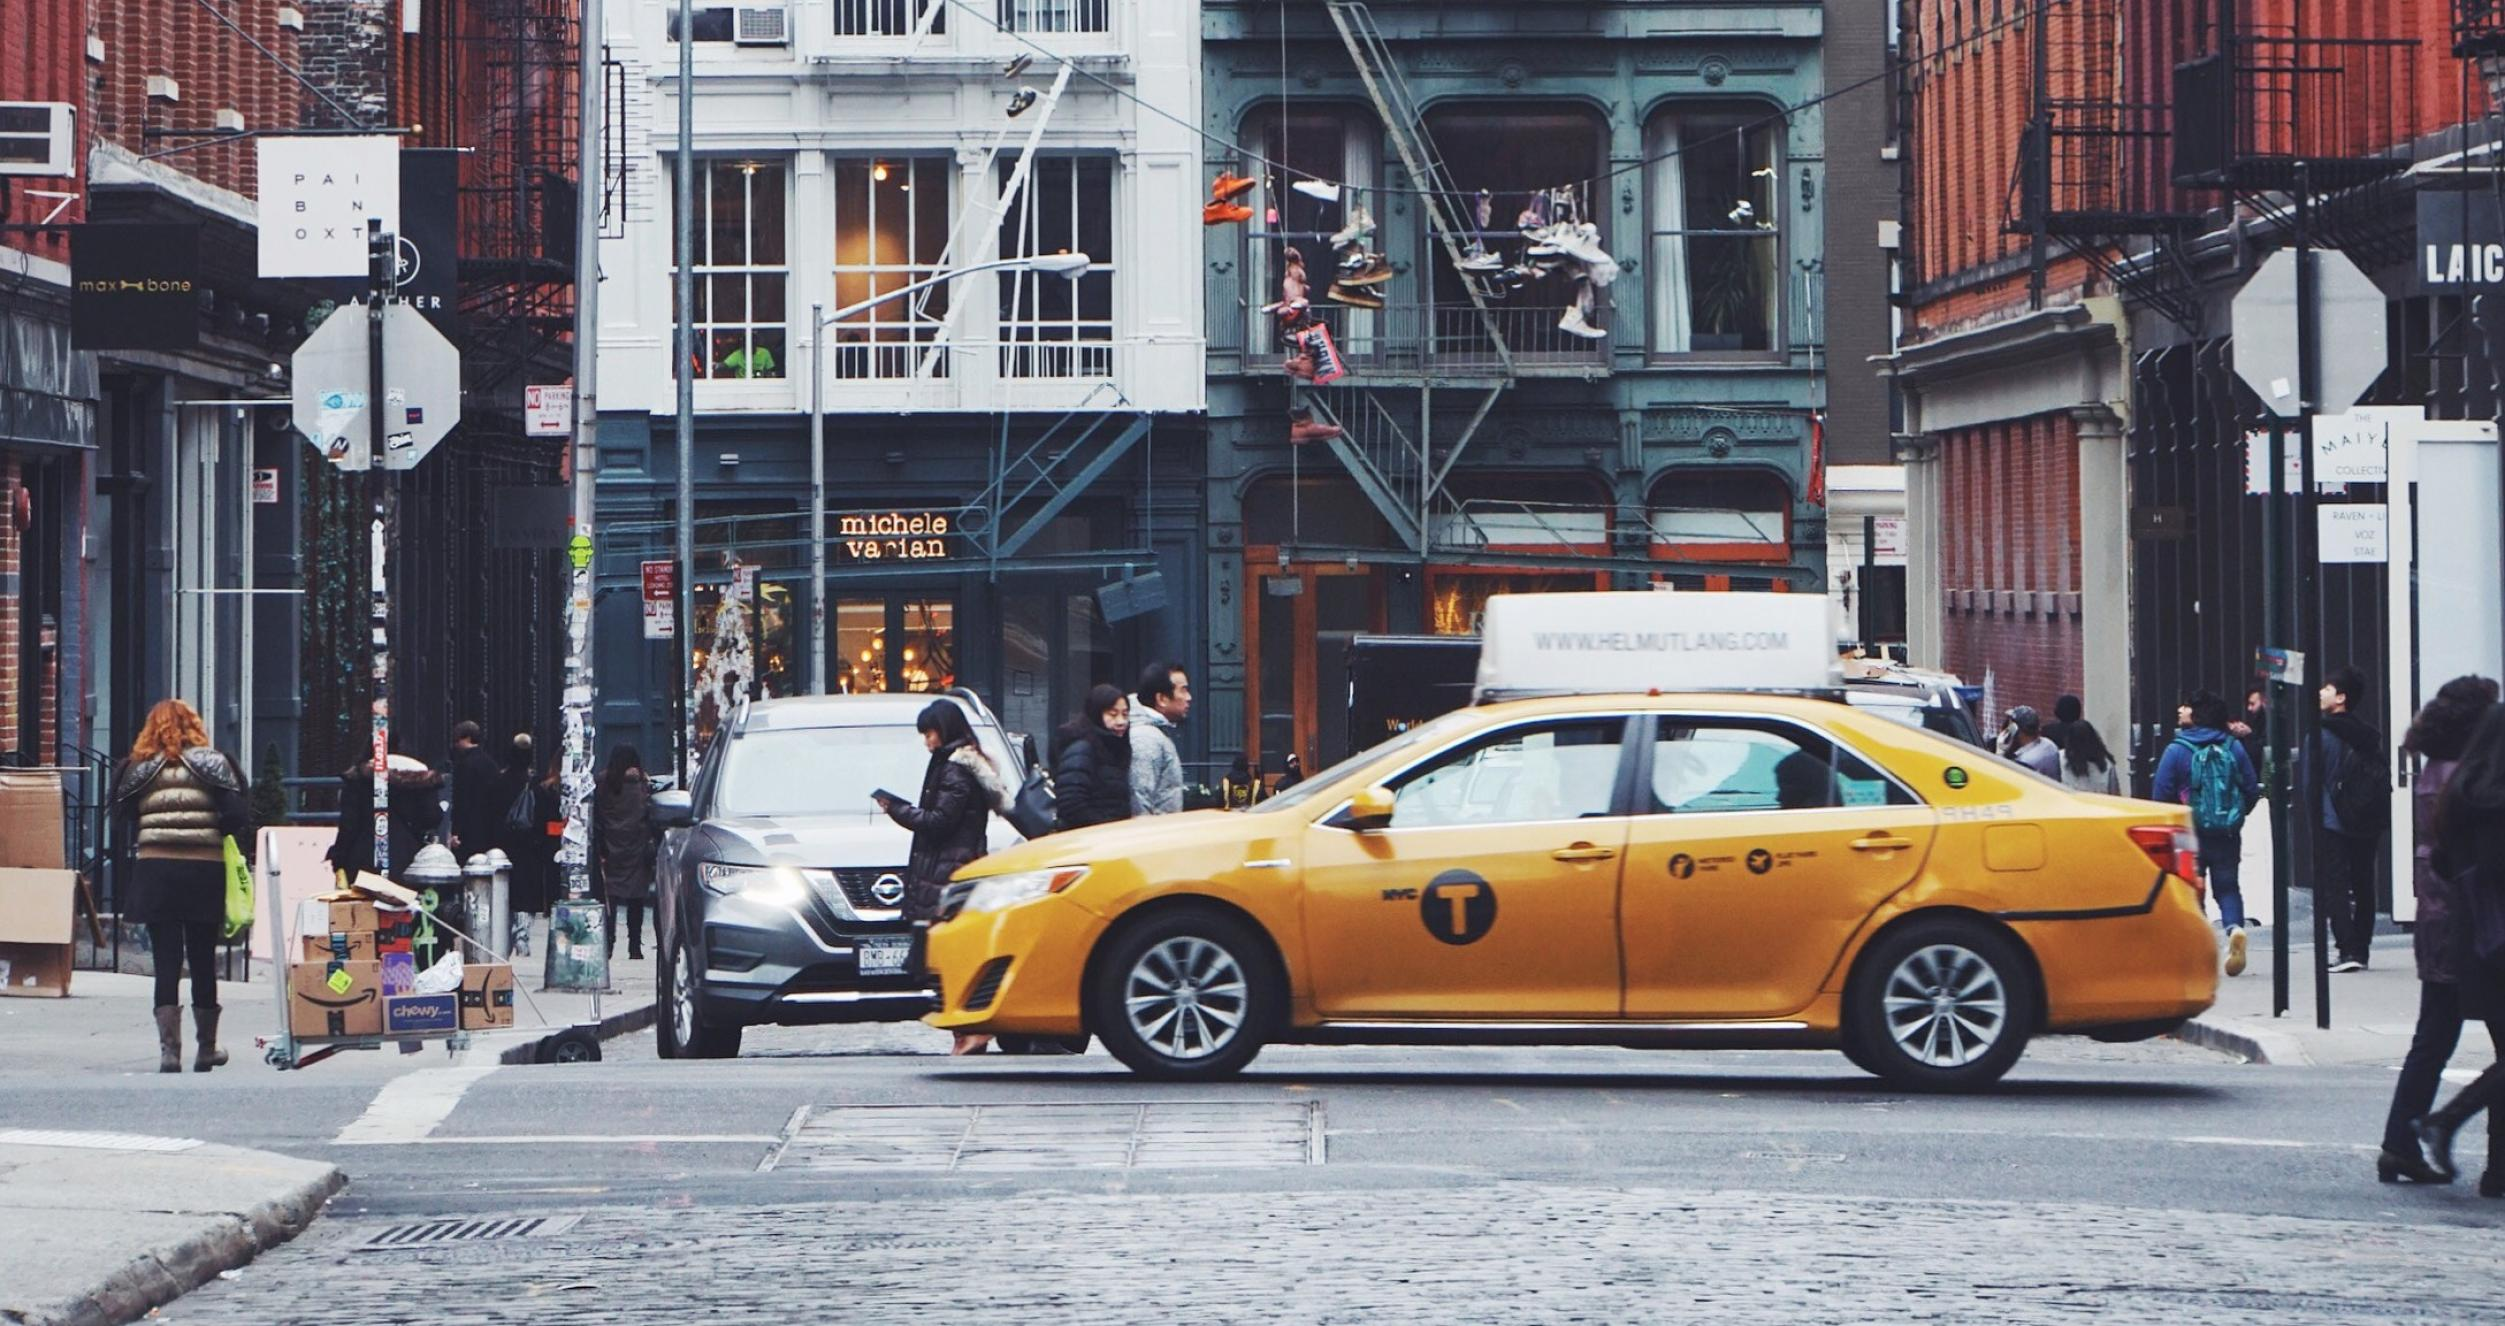 Photo downtown NYC of cab by photographer Heather Shevlin